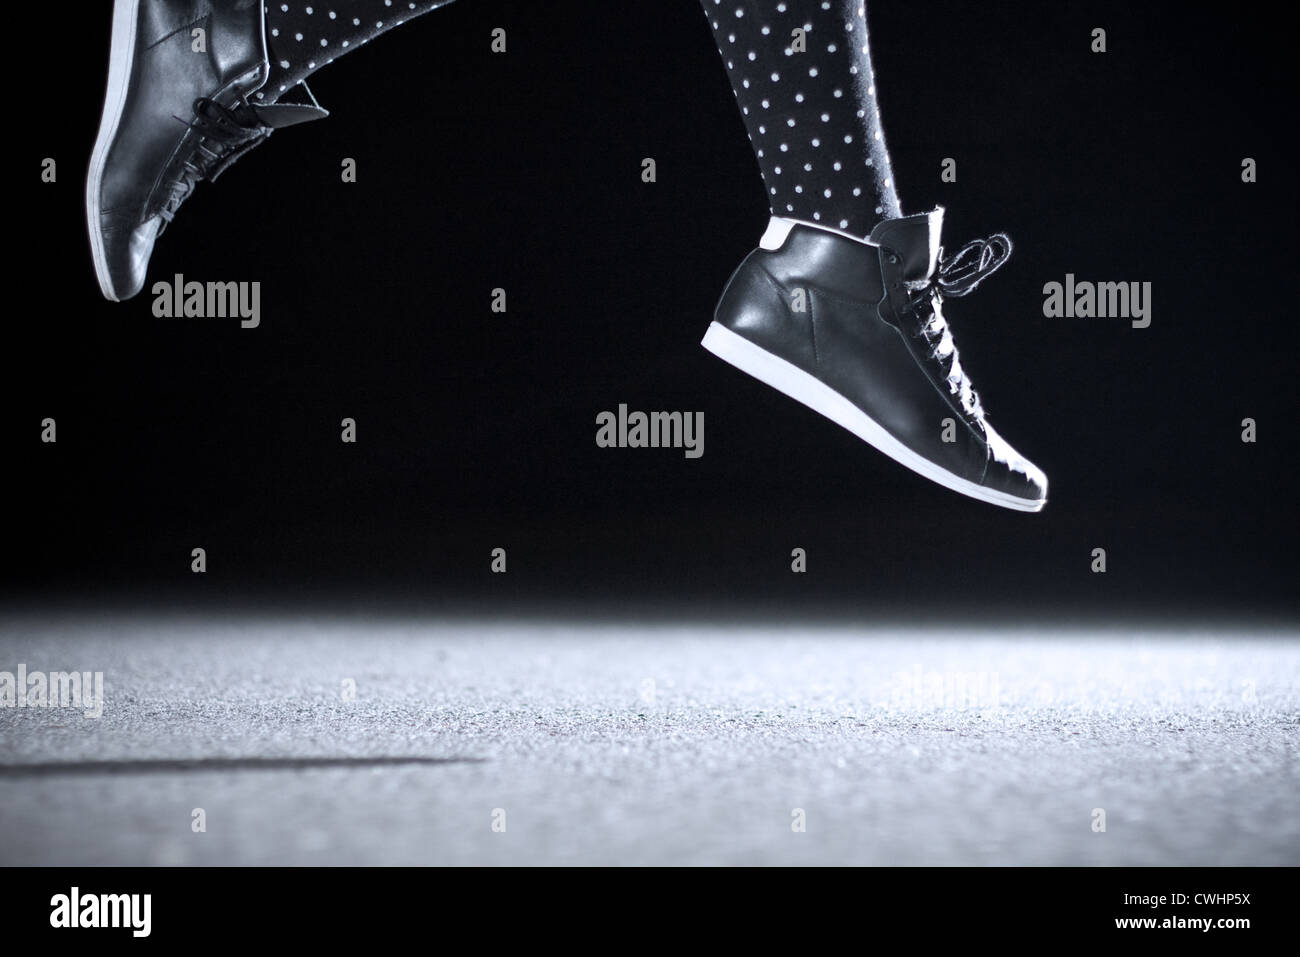 jump,youth culture,jumping,elated - Stock Image